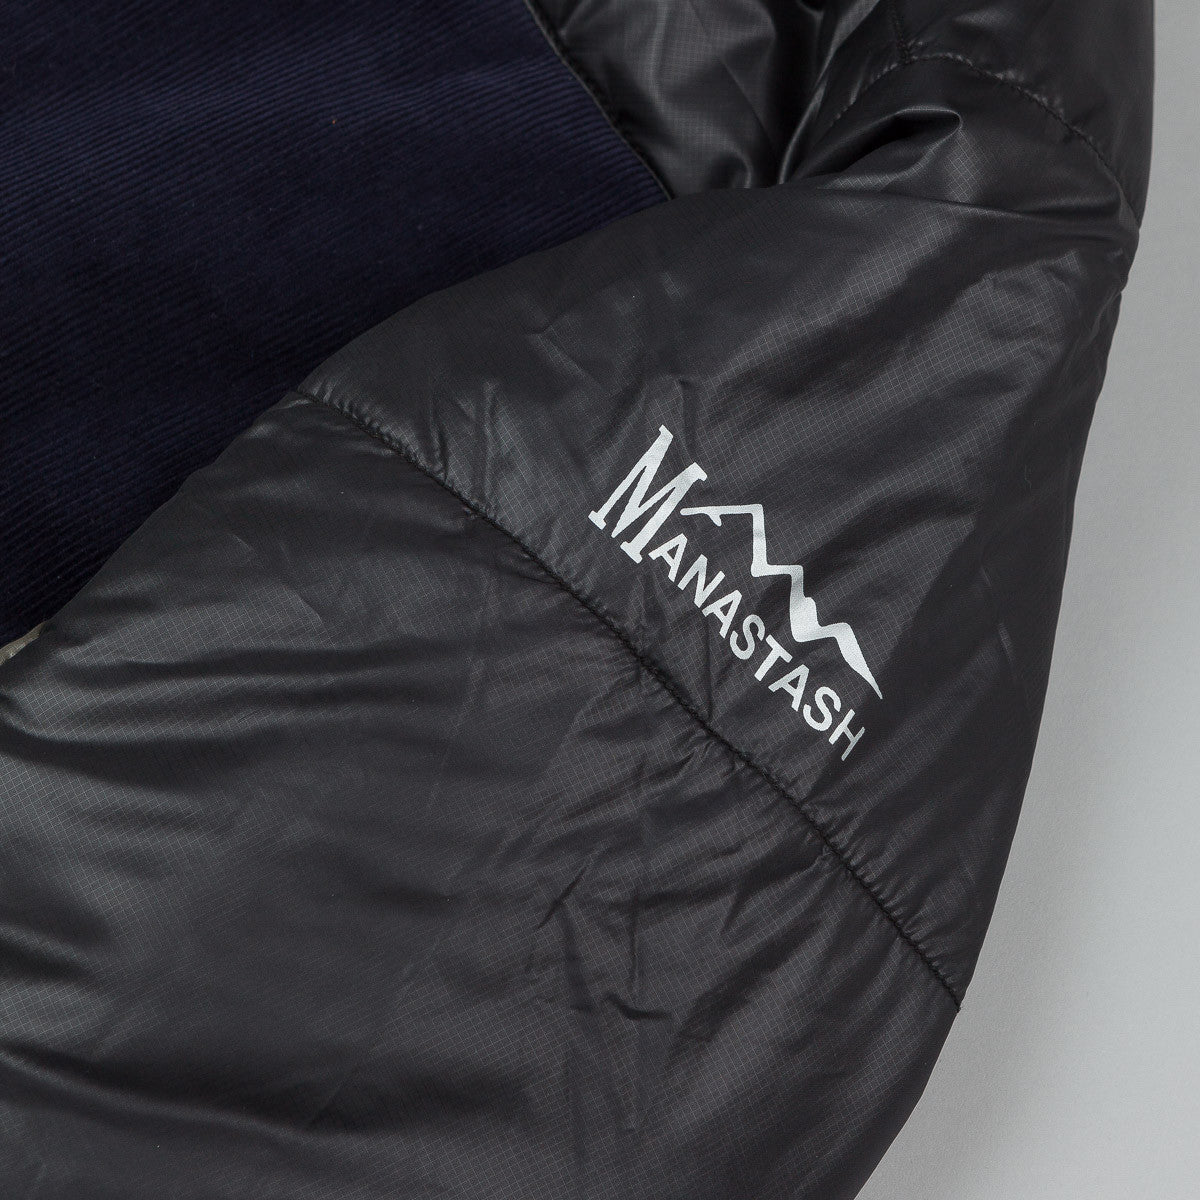 Manastash Perpri 100 Jacket-9 - Black